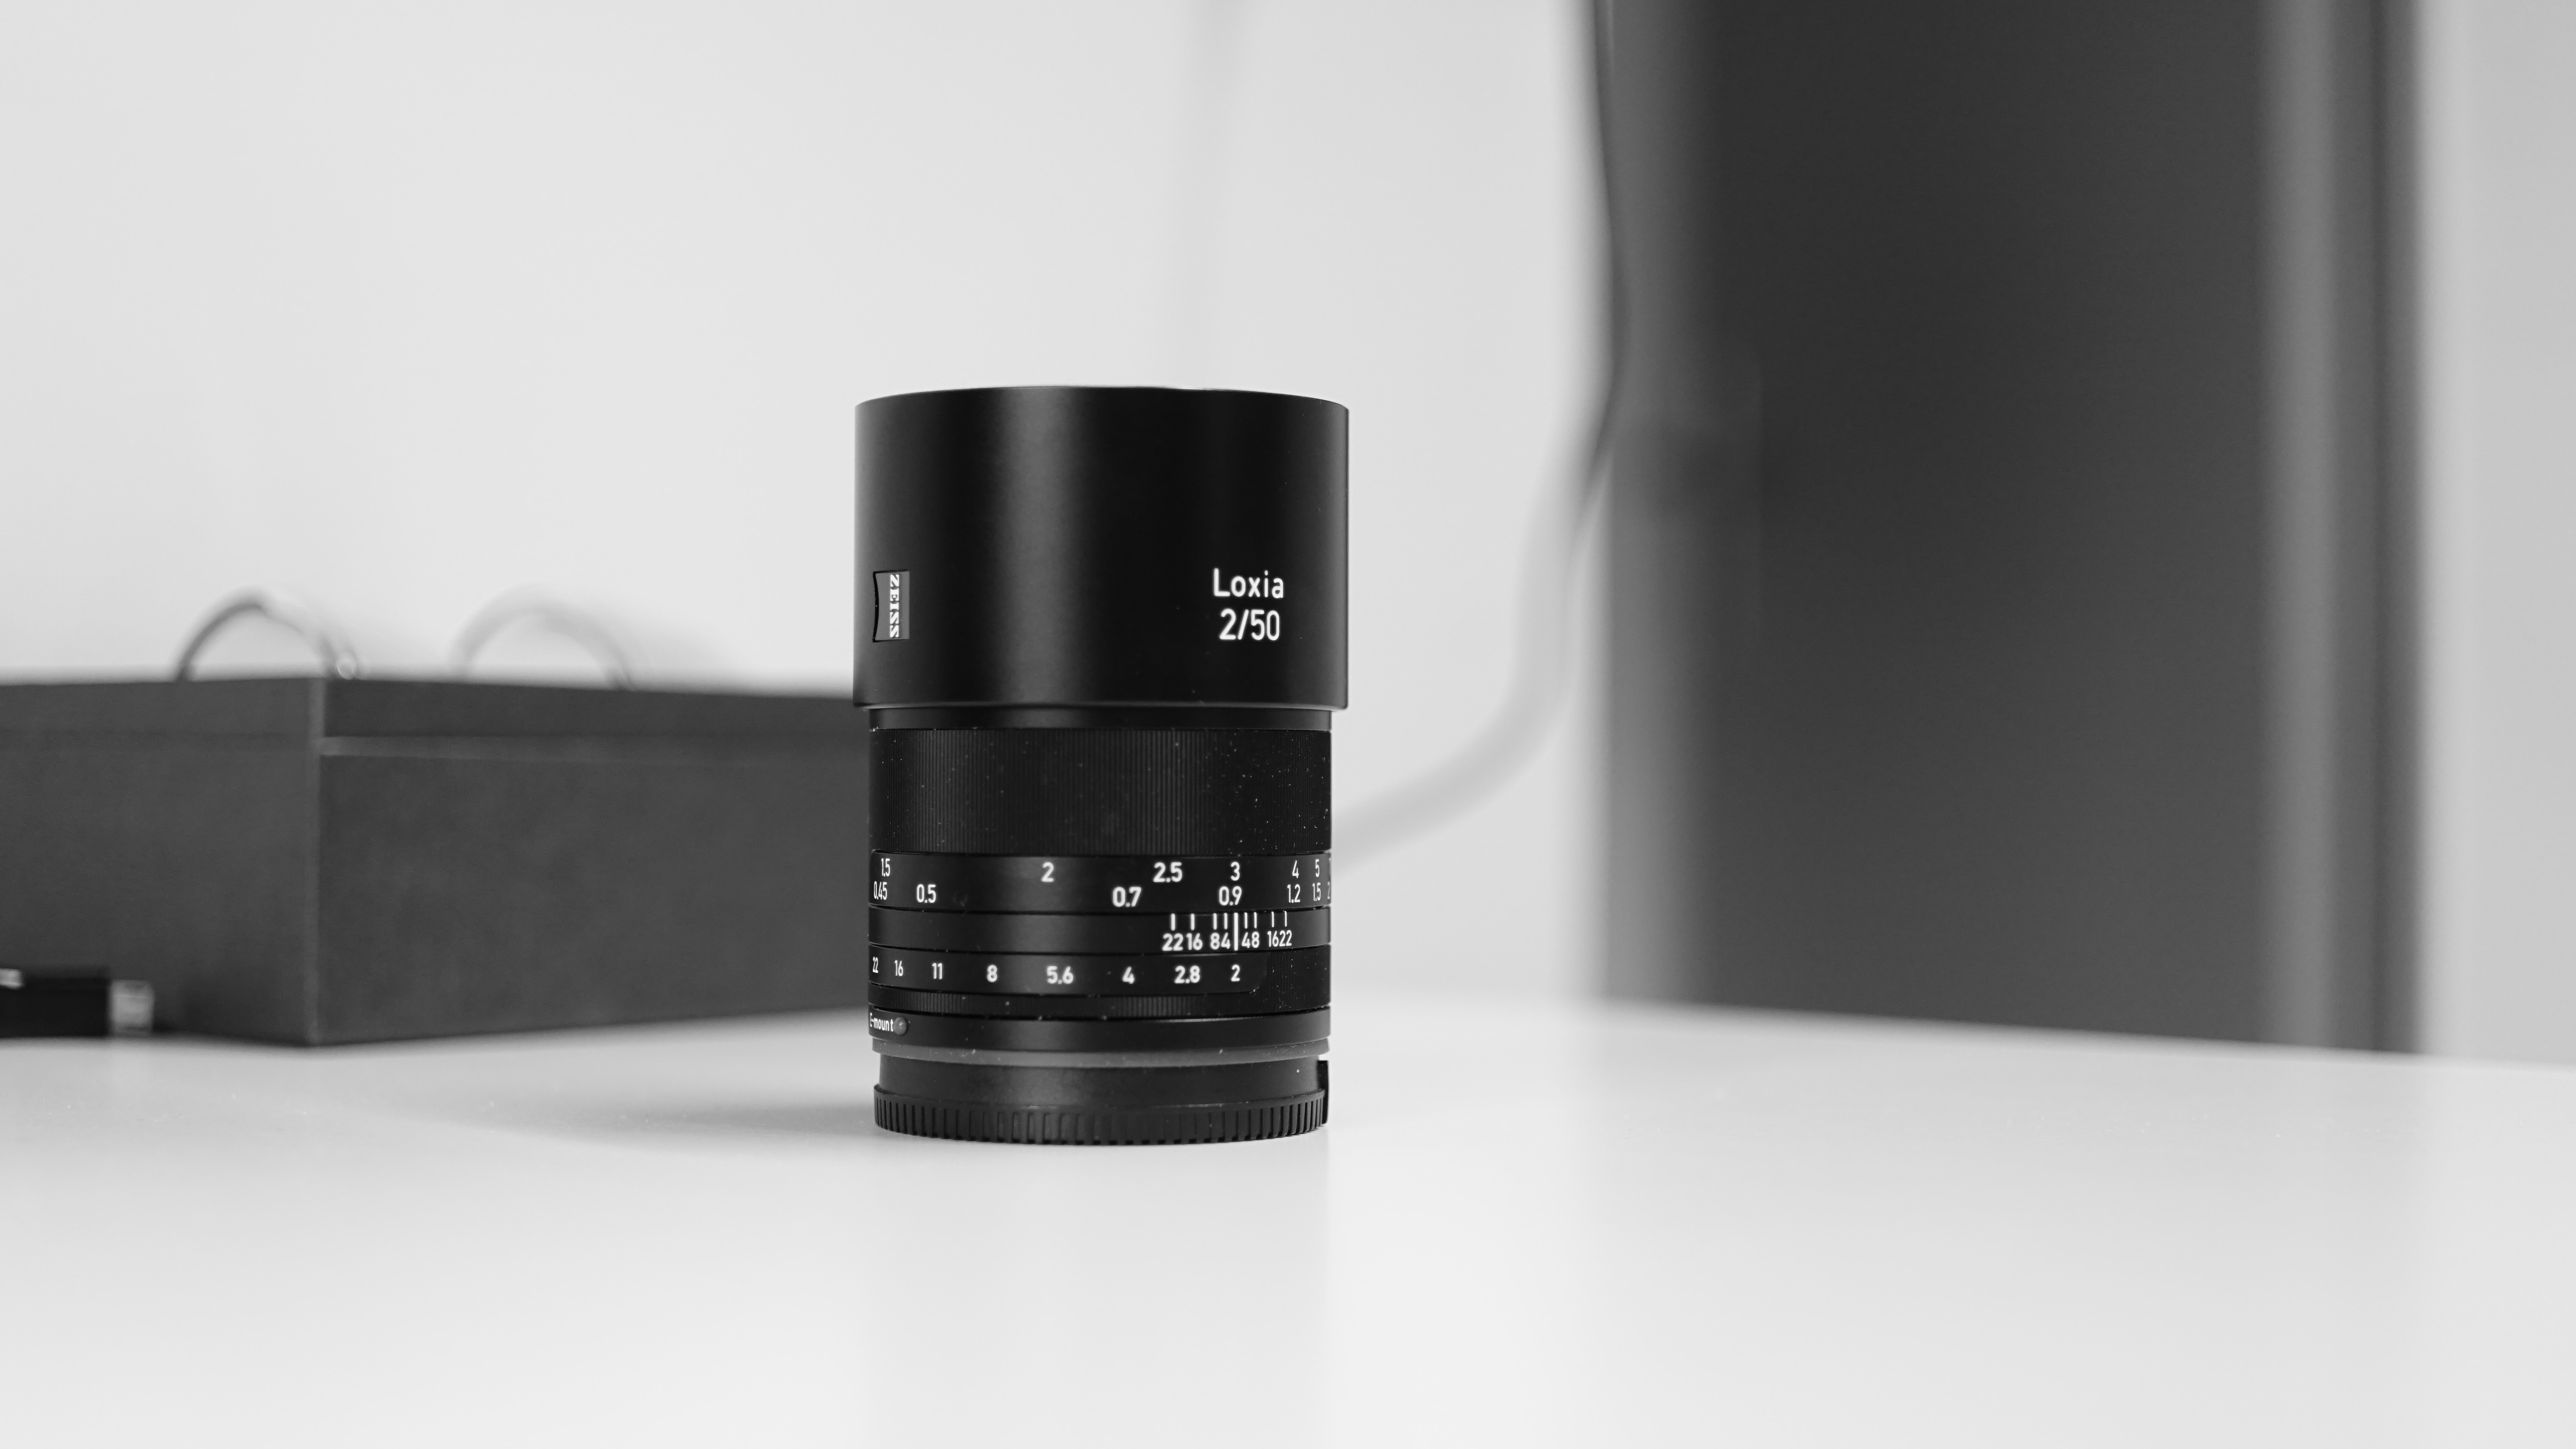 Free stock photo of camera, lense, zeiss